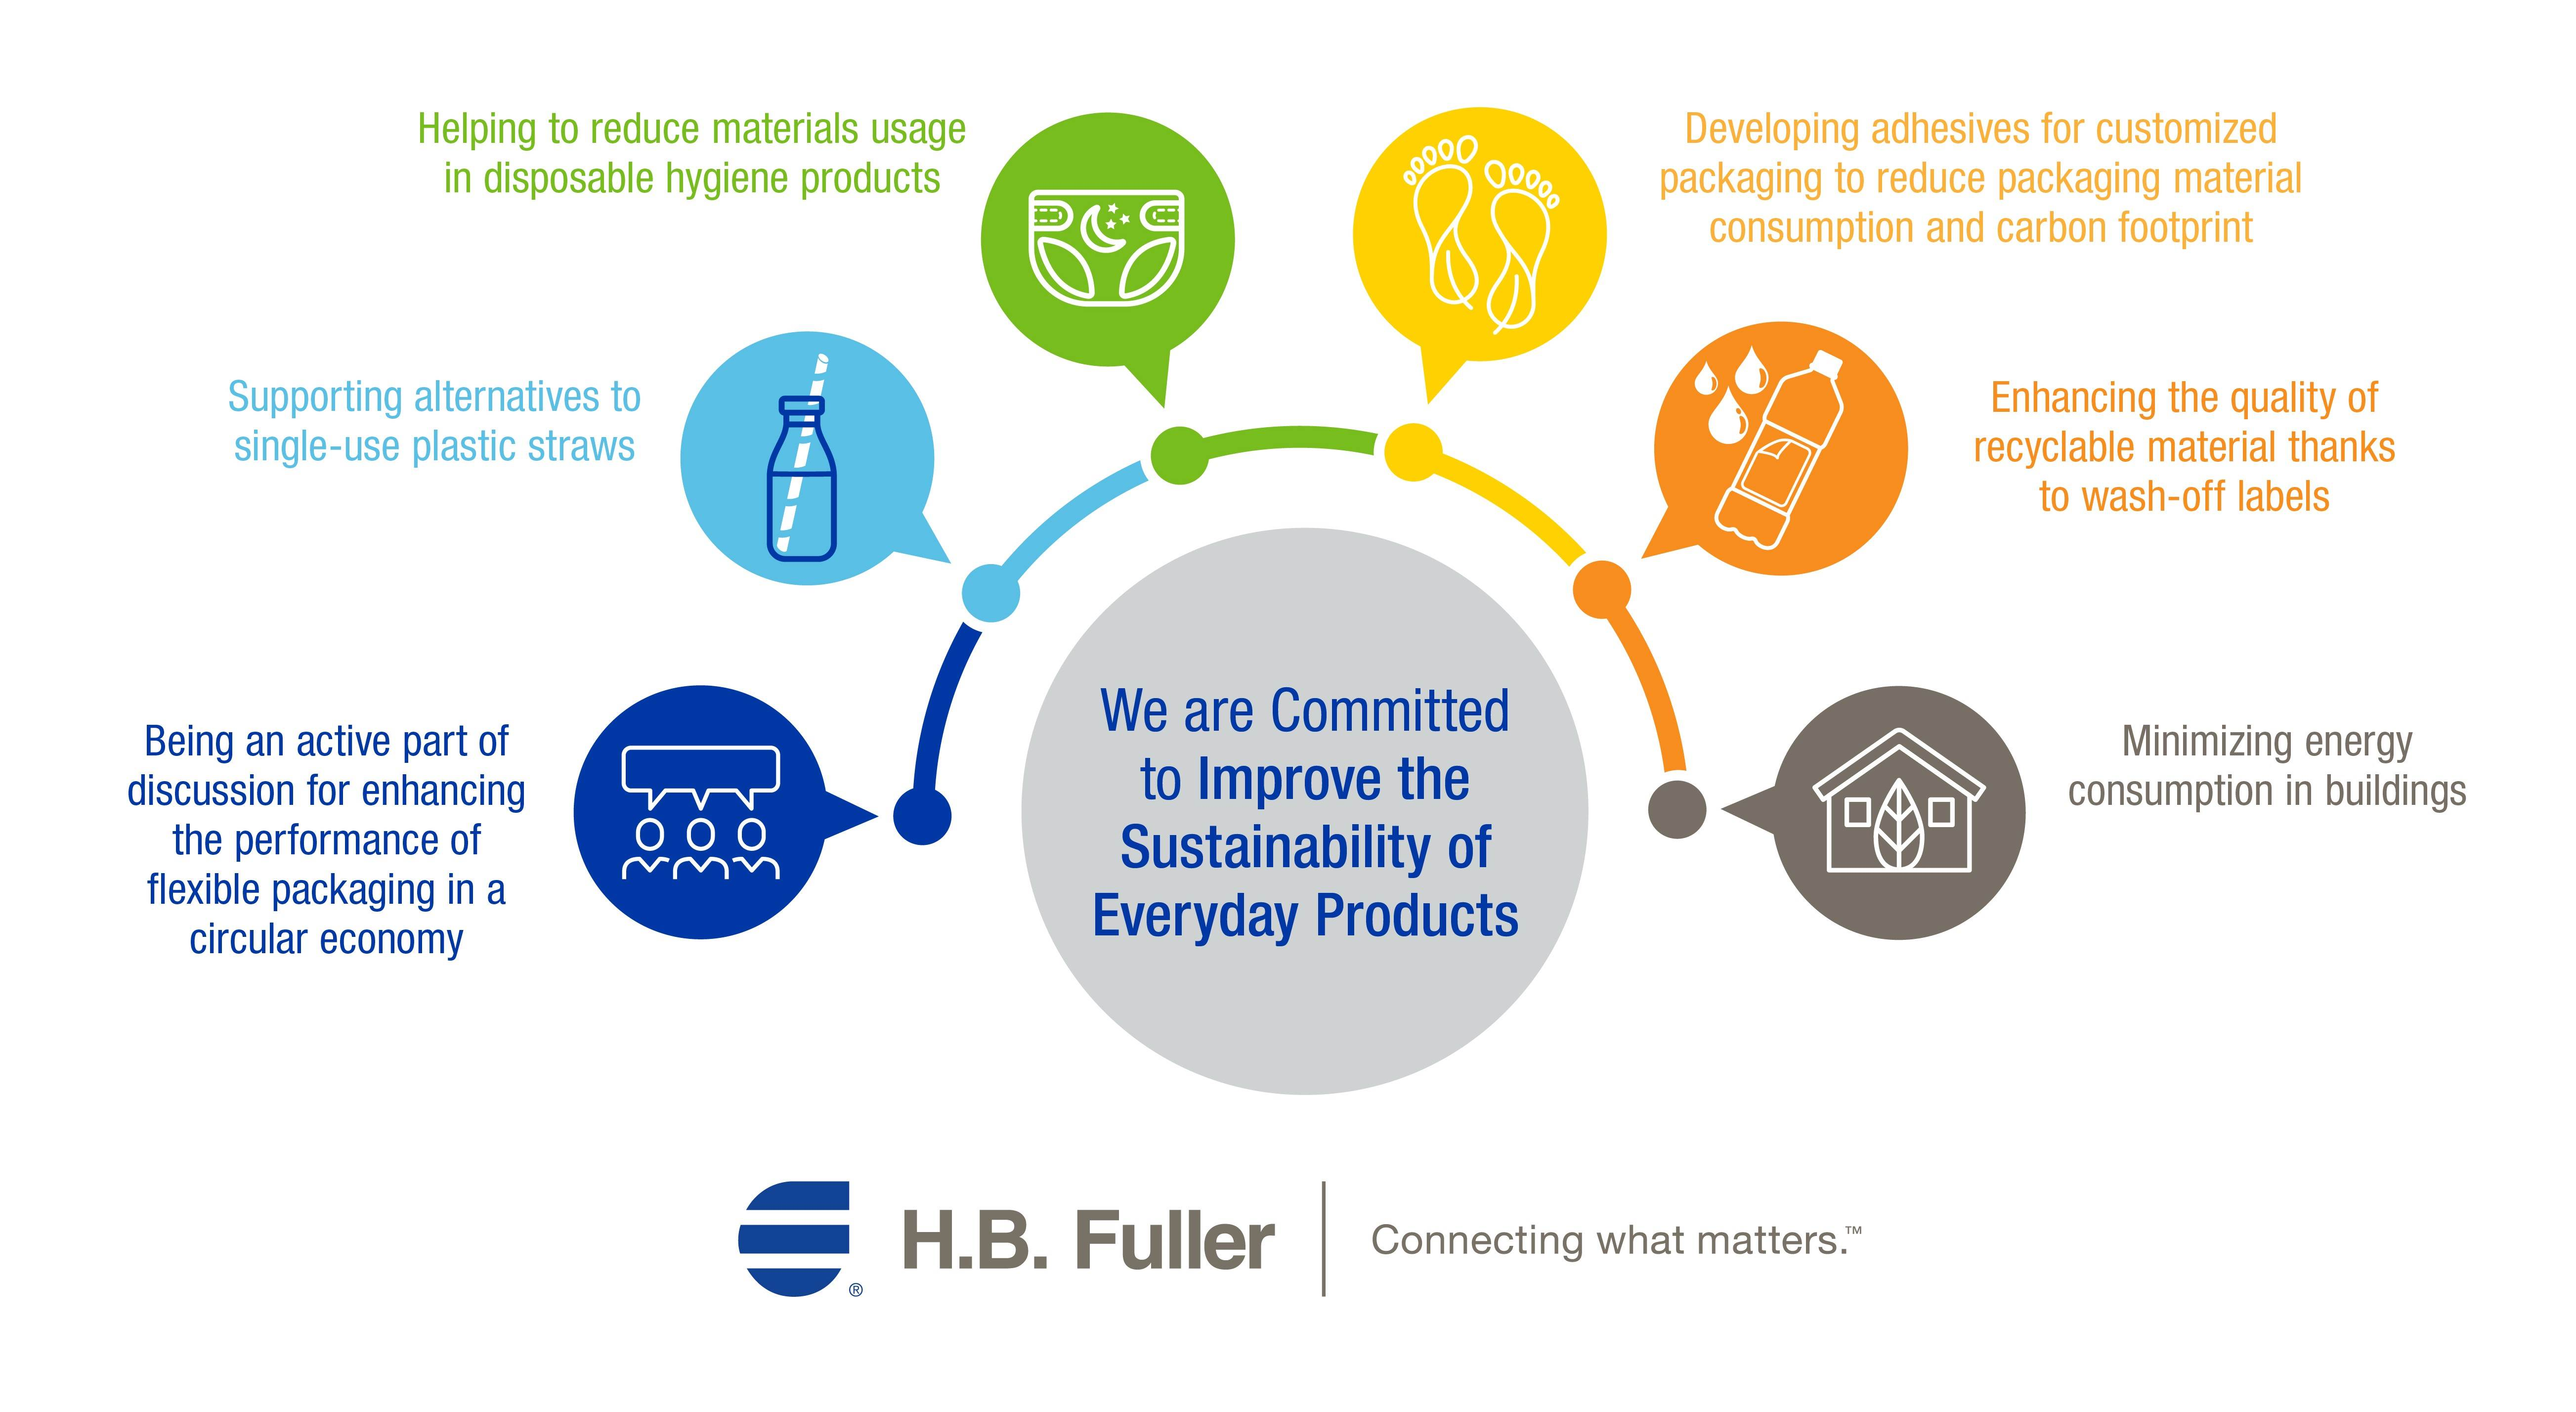 H.B. Fuller is committed to improve the sustainability of everyday products.